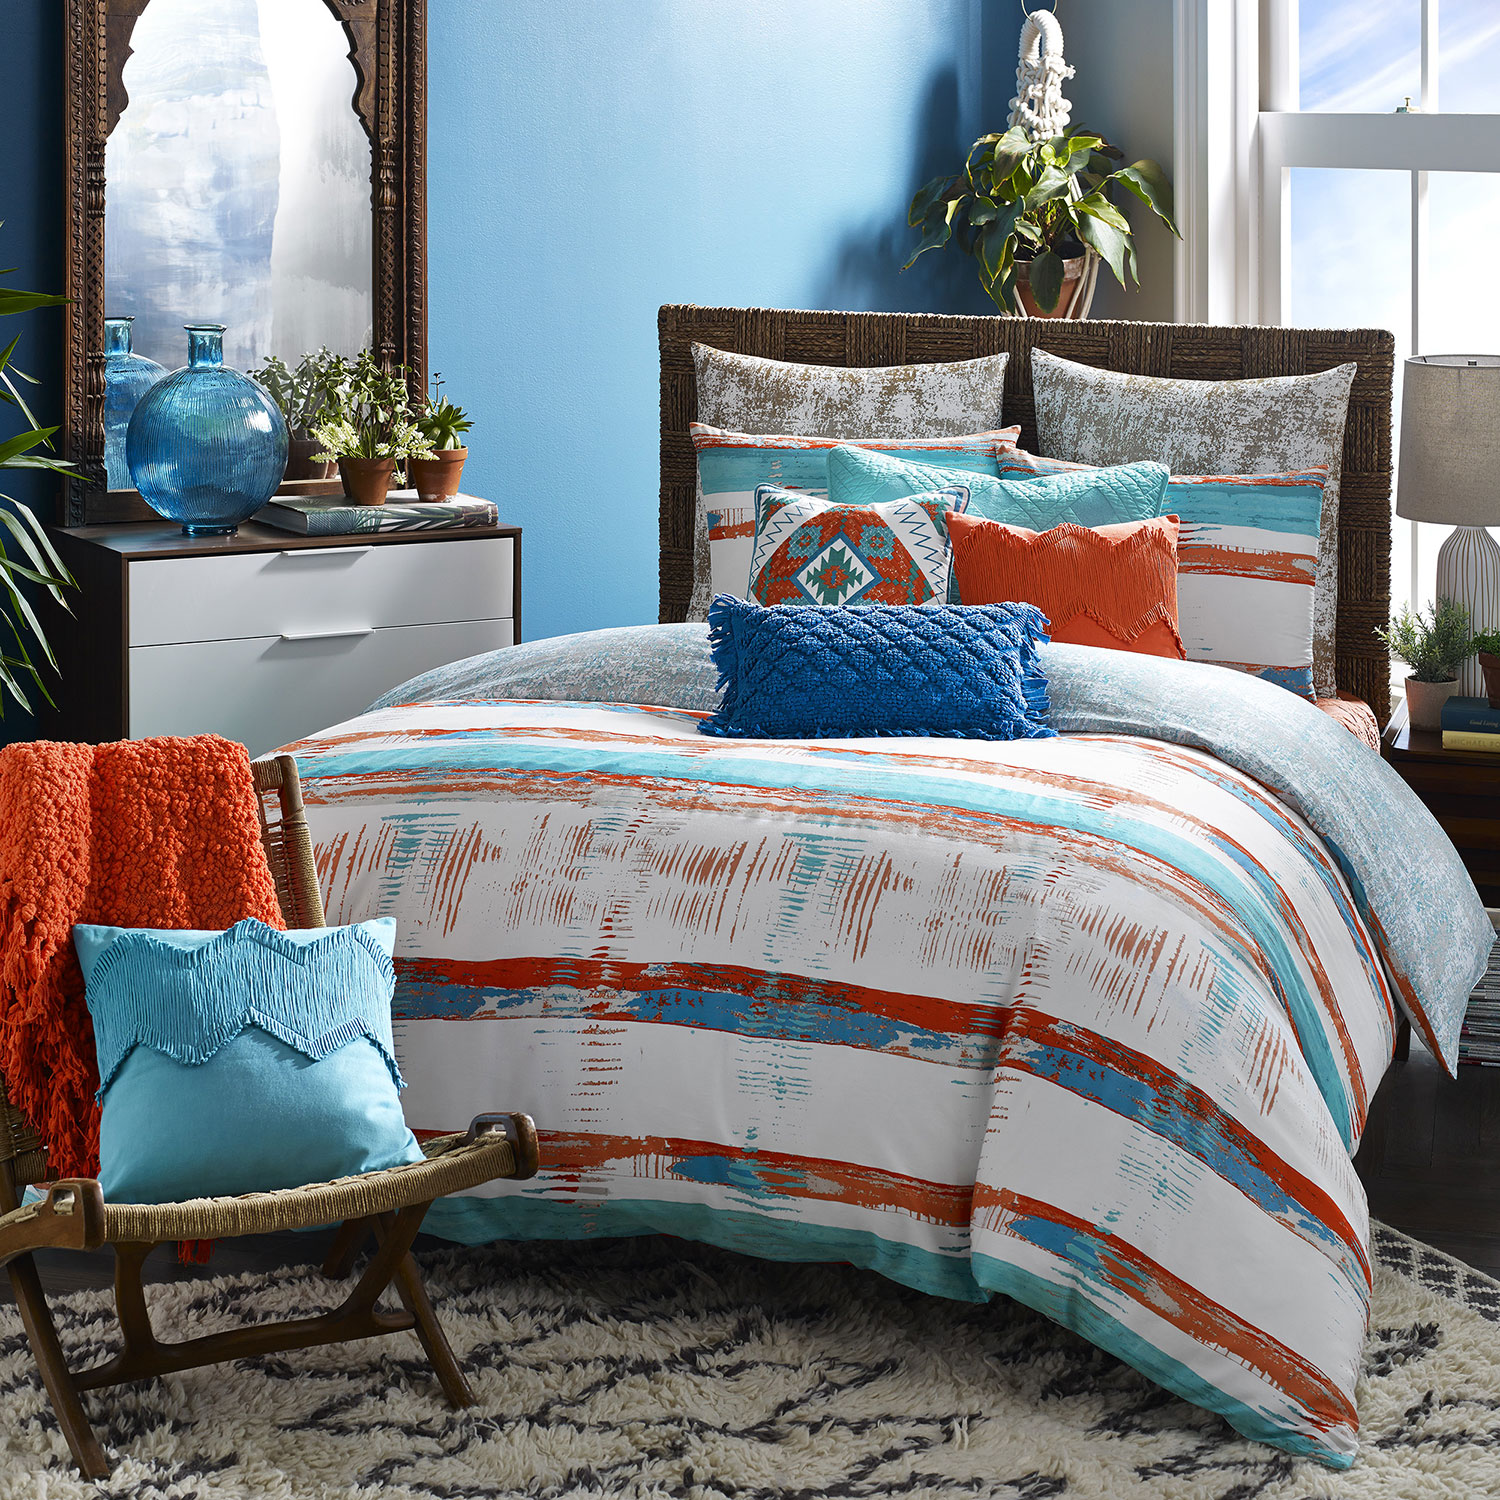 Siesta By Blissliving Home Bedding Beddingsuperstore Com